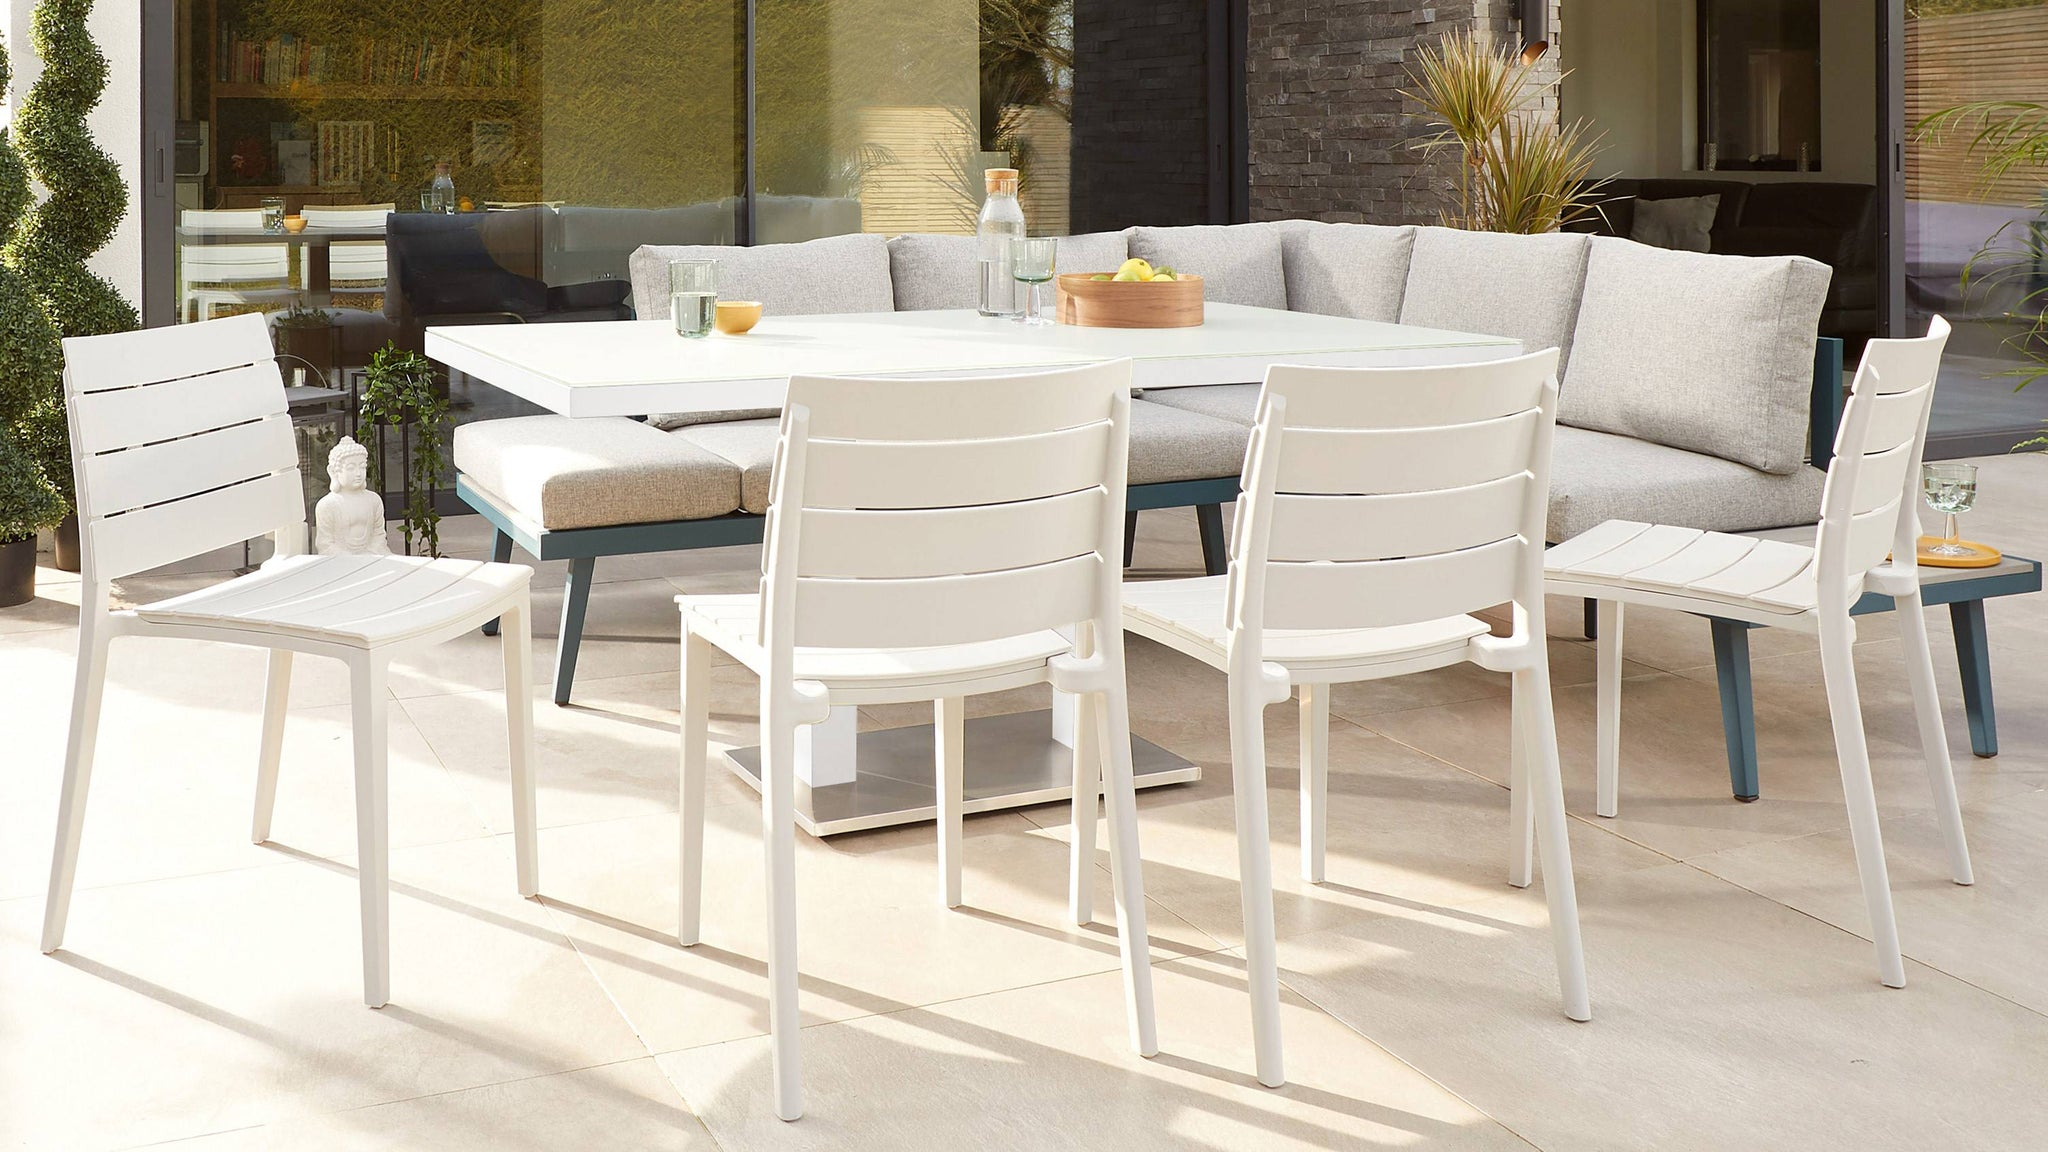 Garden furniture for families